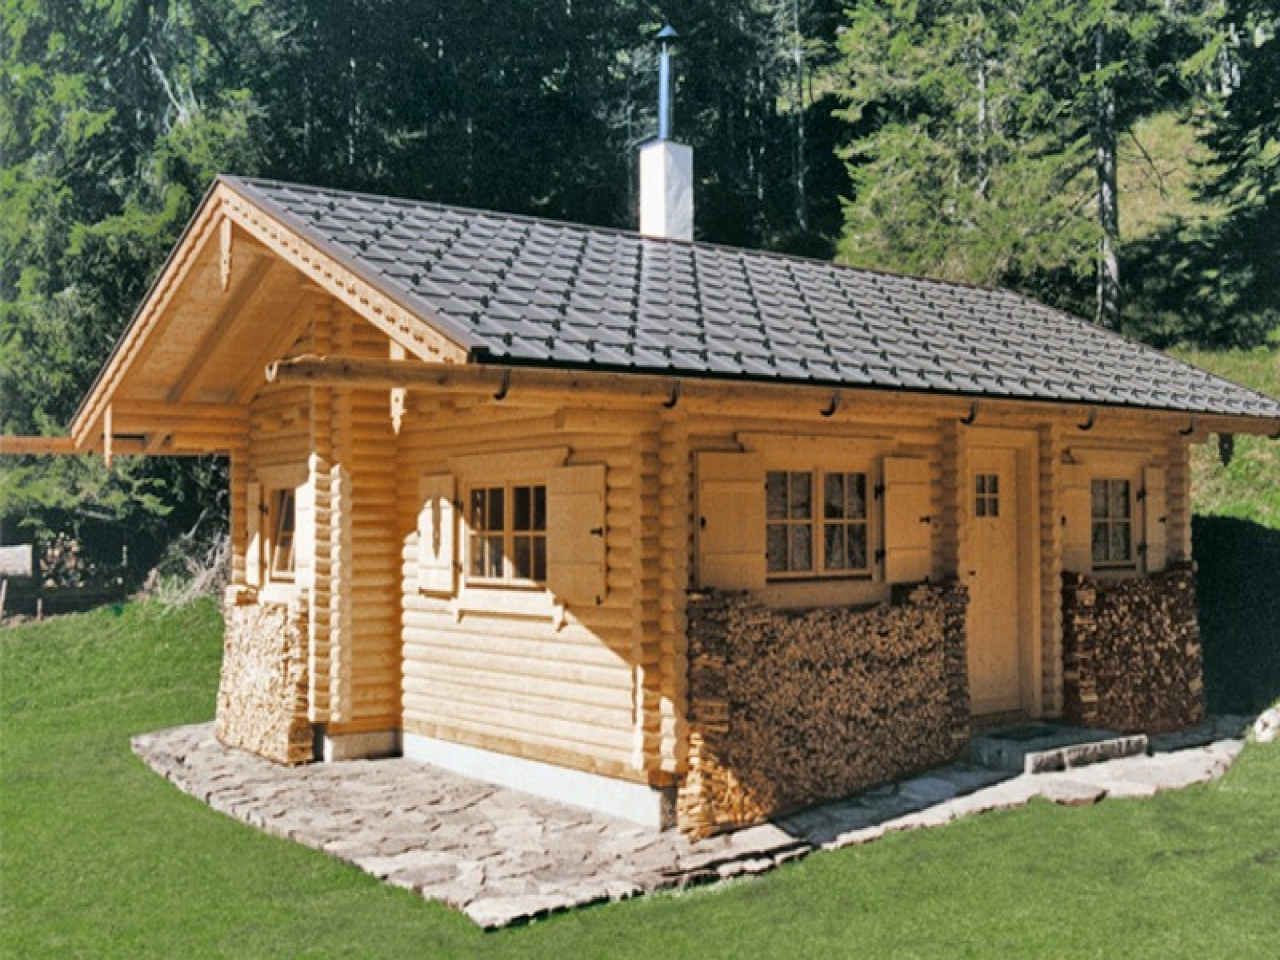 Hunting cabin plans inexpensive small cabin plans hunting Small cabin plans